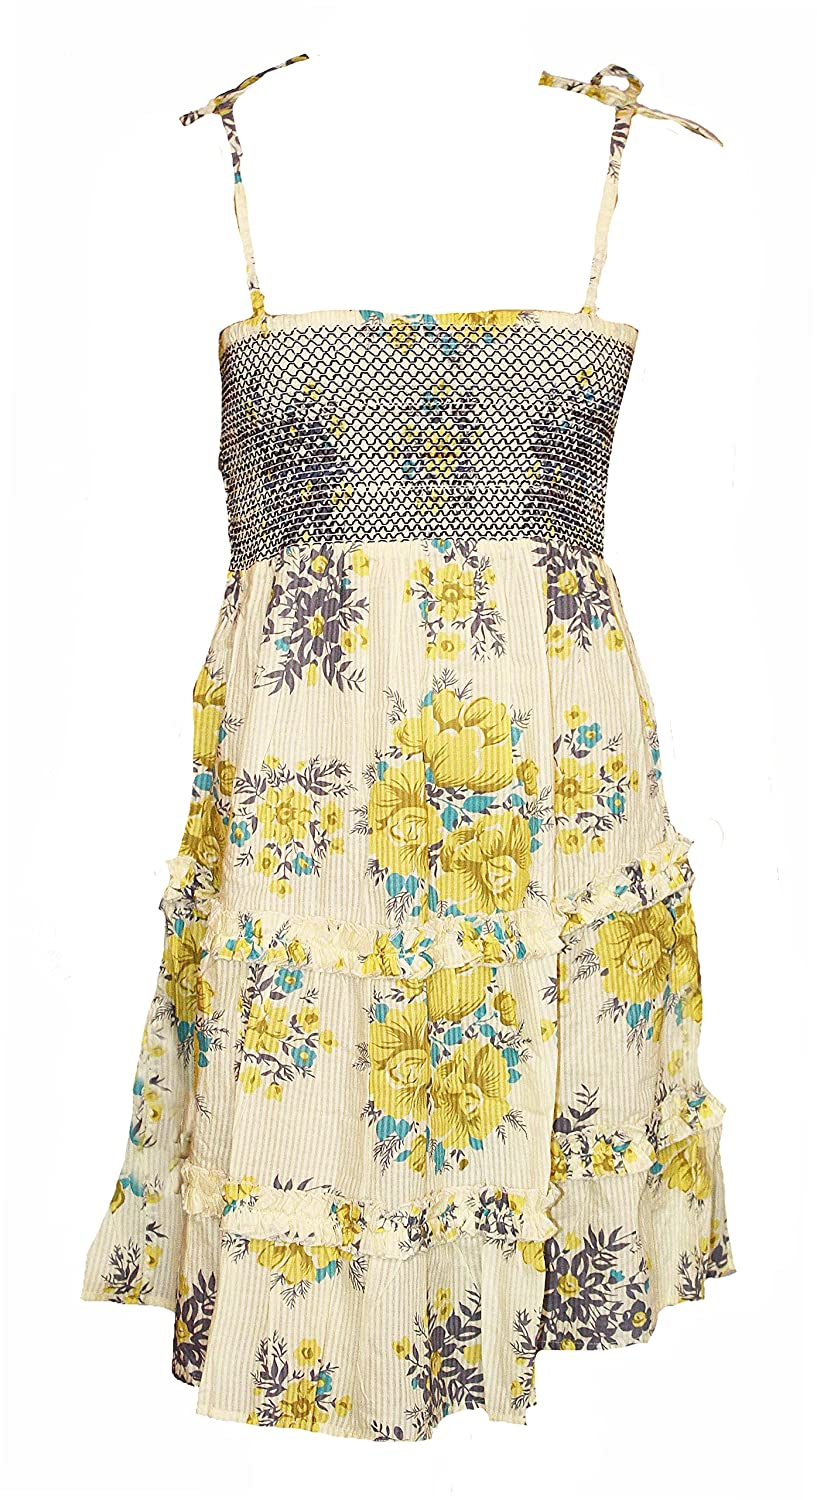 002dda11d20 Floral Elasticated Bodice Strappy Summer Dress. Sizes 6-12  Amazon.co.uk   Clothing